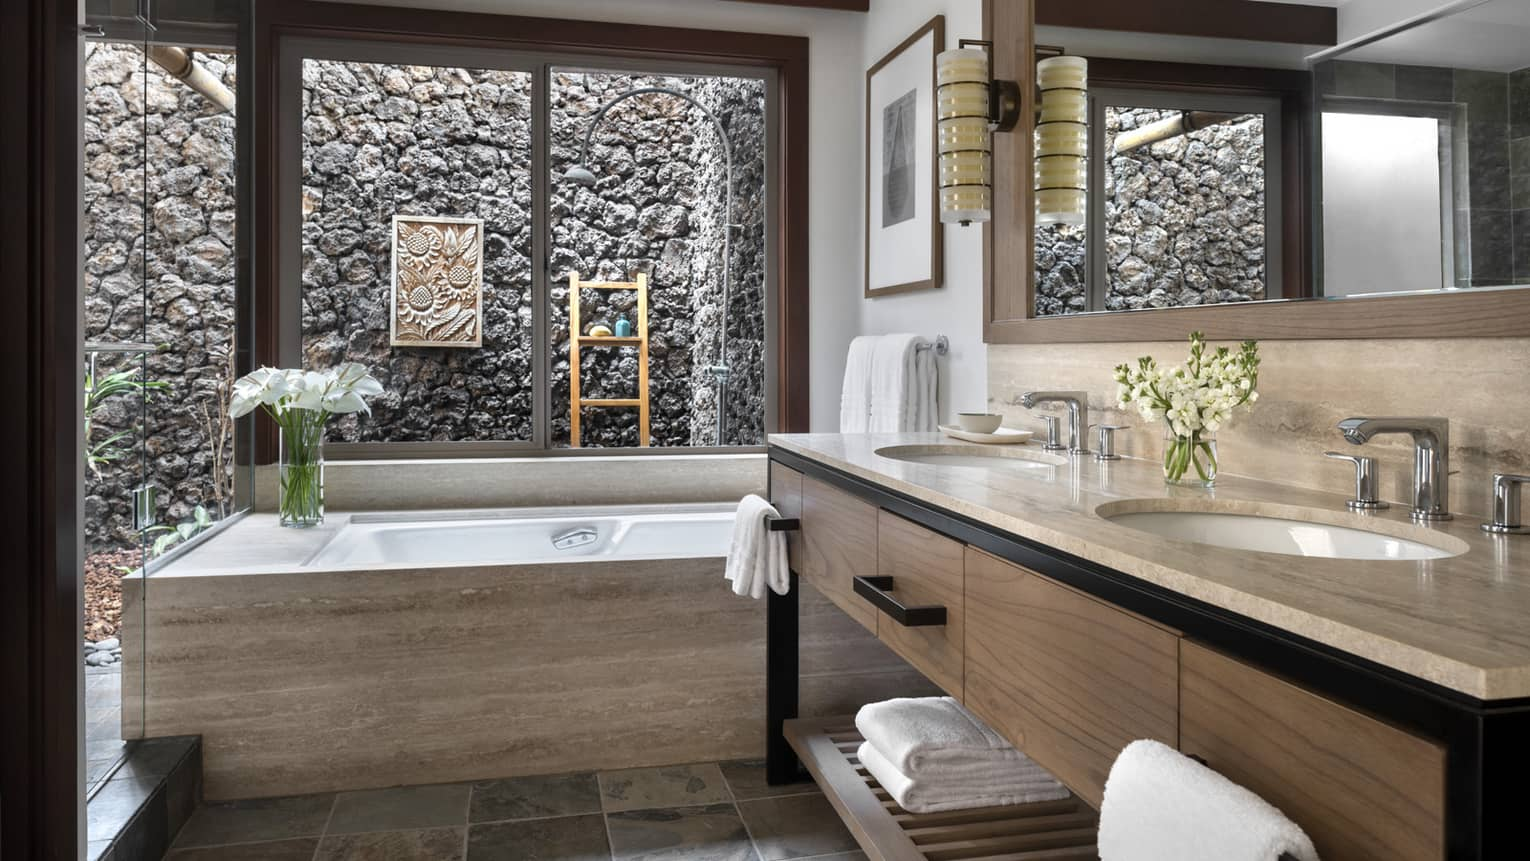 Bathroom with taupe marble vanity and tub, window looks out to outdoor stone shower